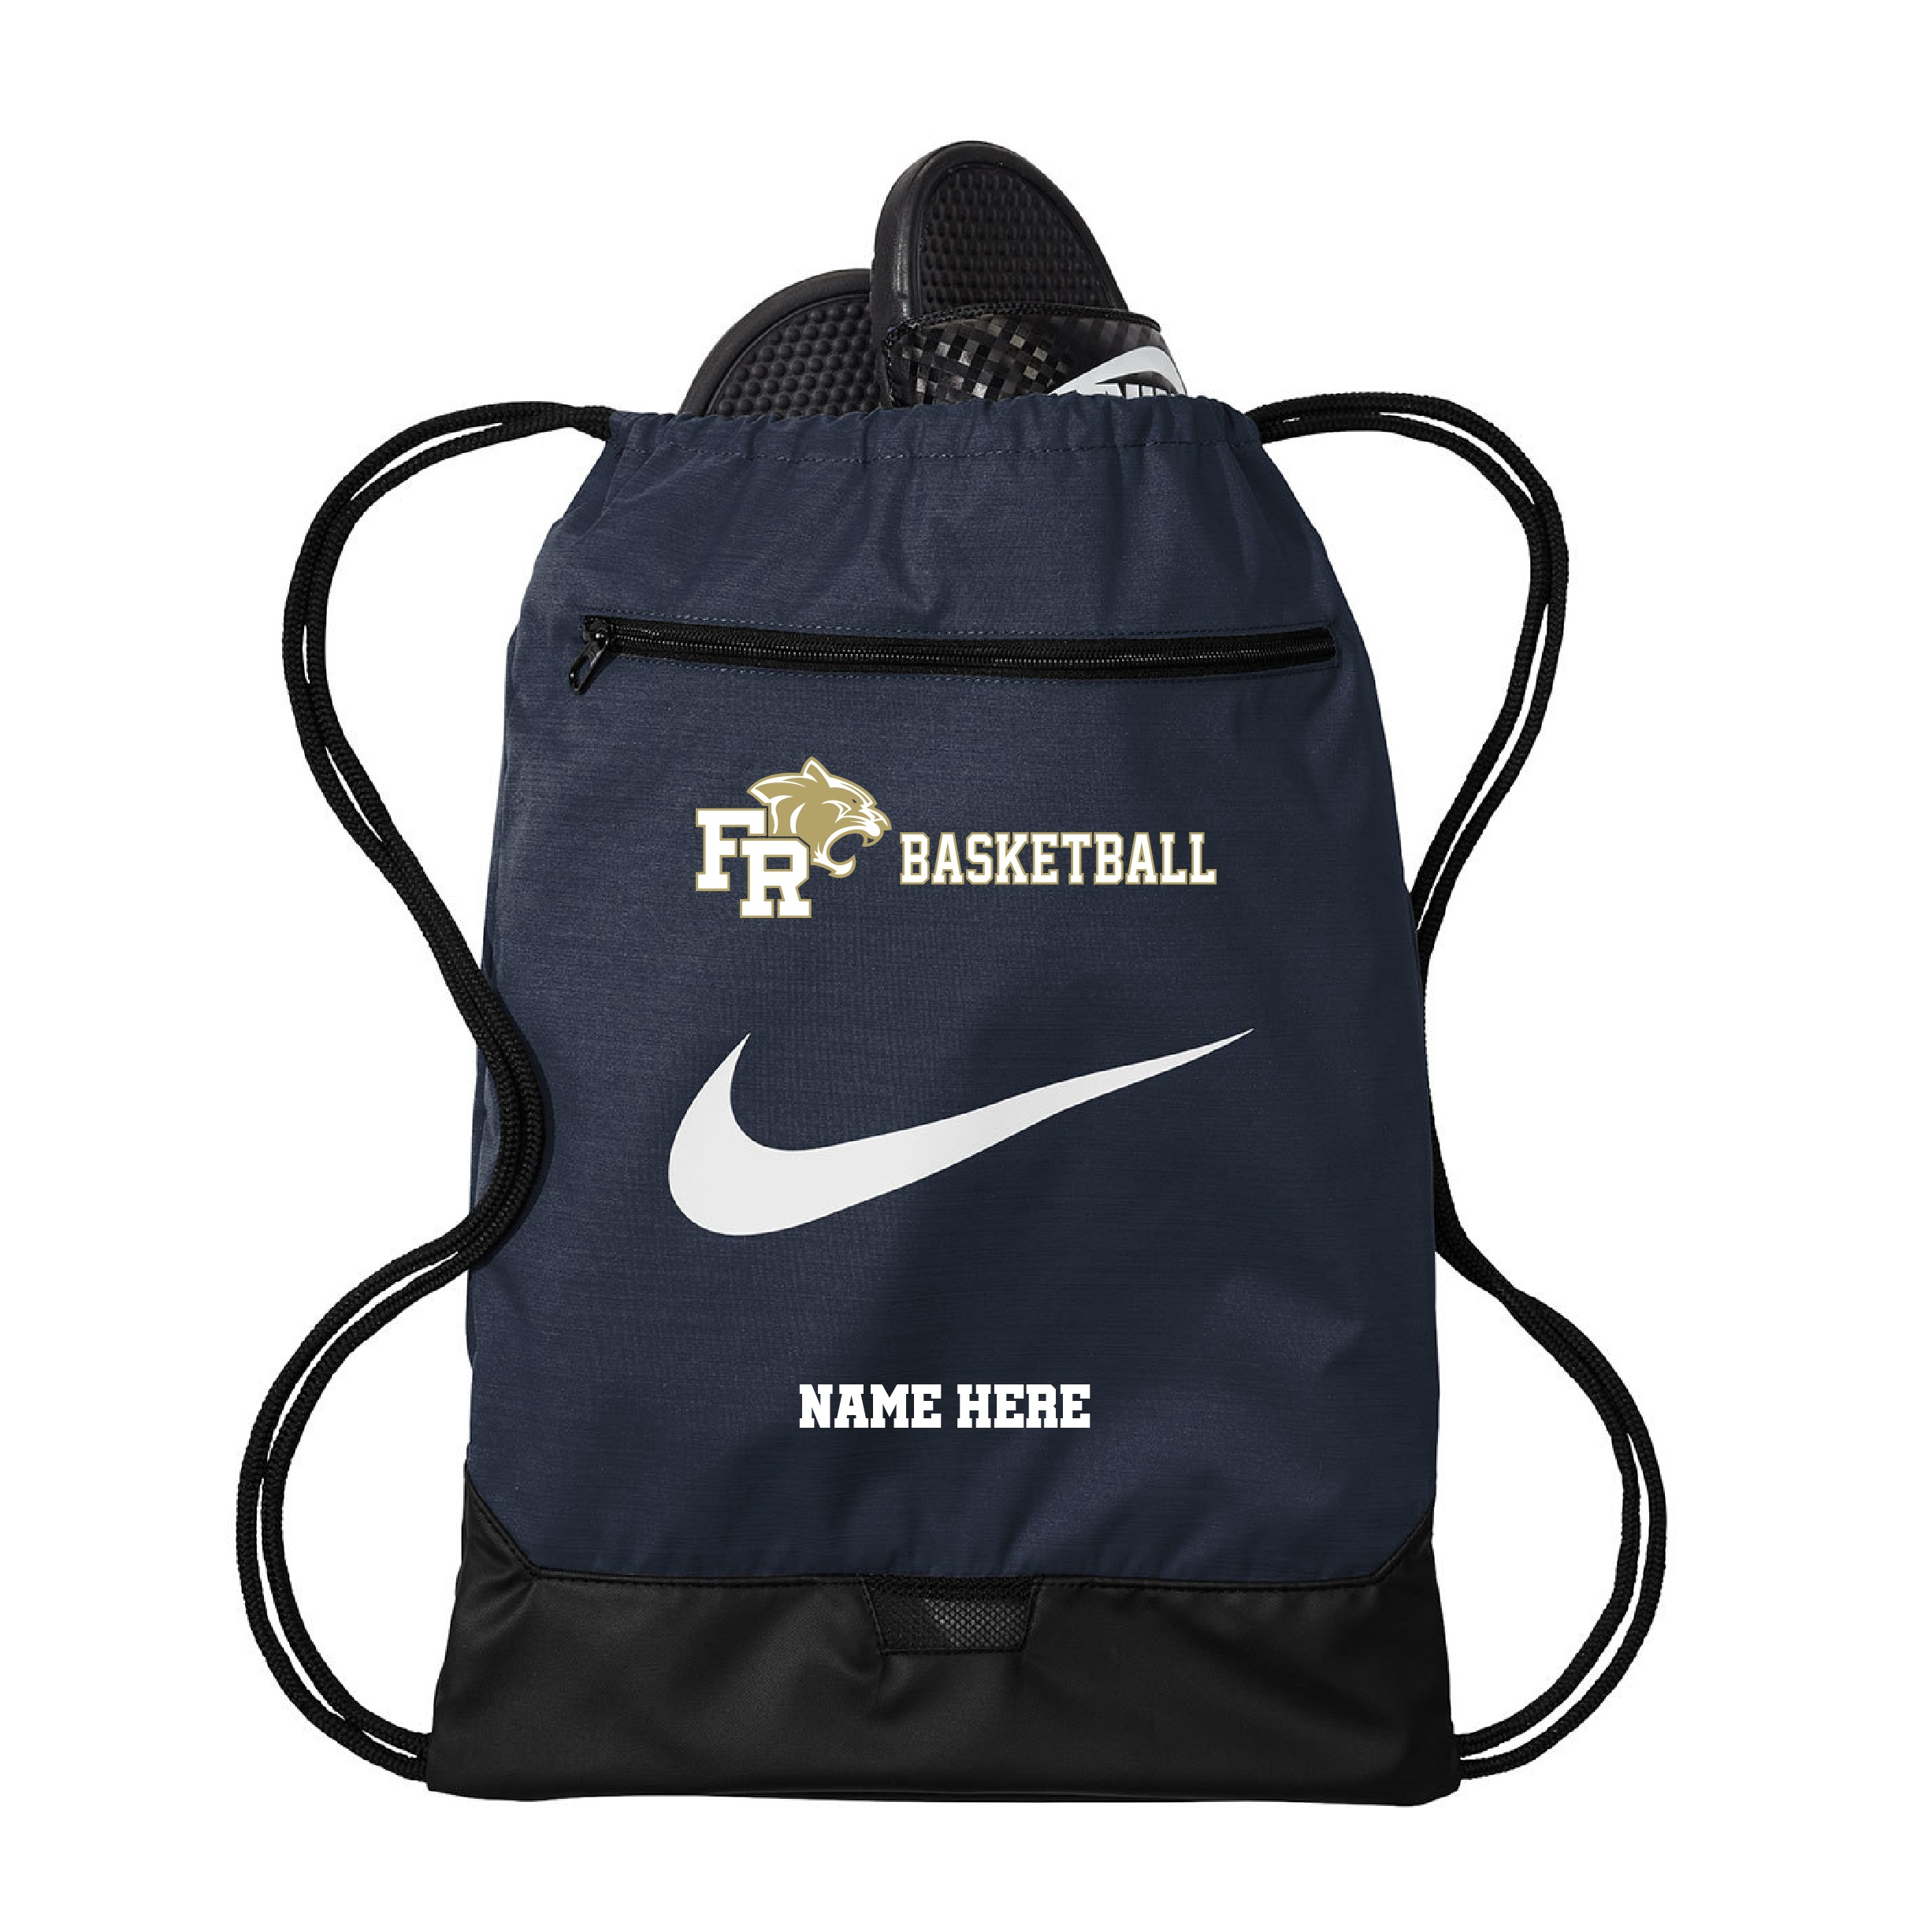 Nike Brasilia Gym Sack with Name